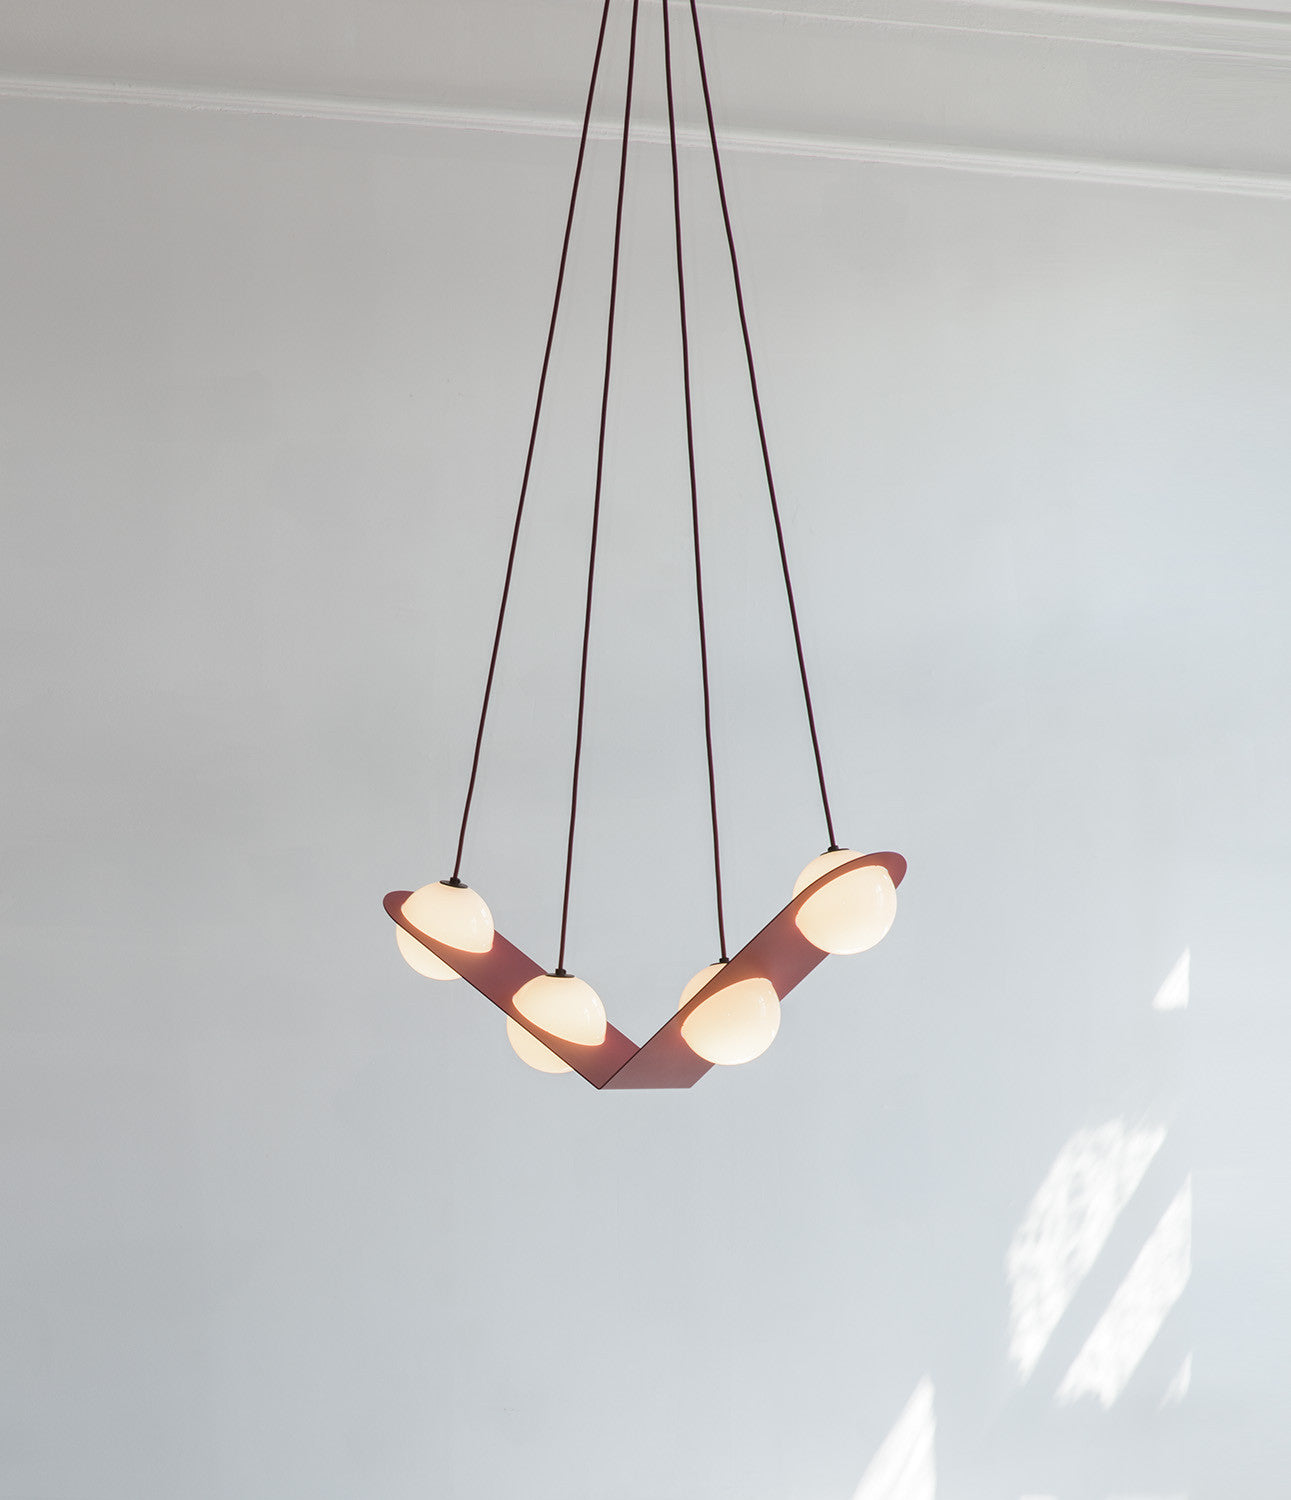 Laurent - LRT02 Pendant Angled Wires